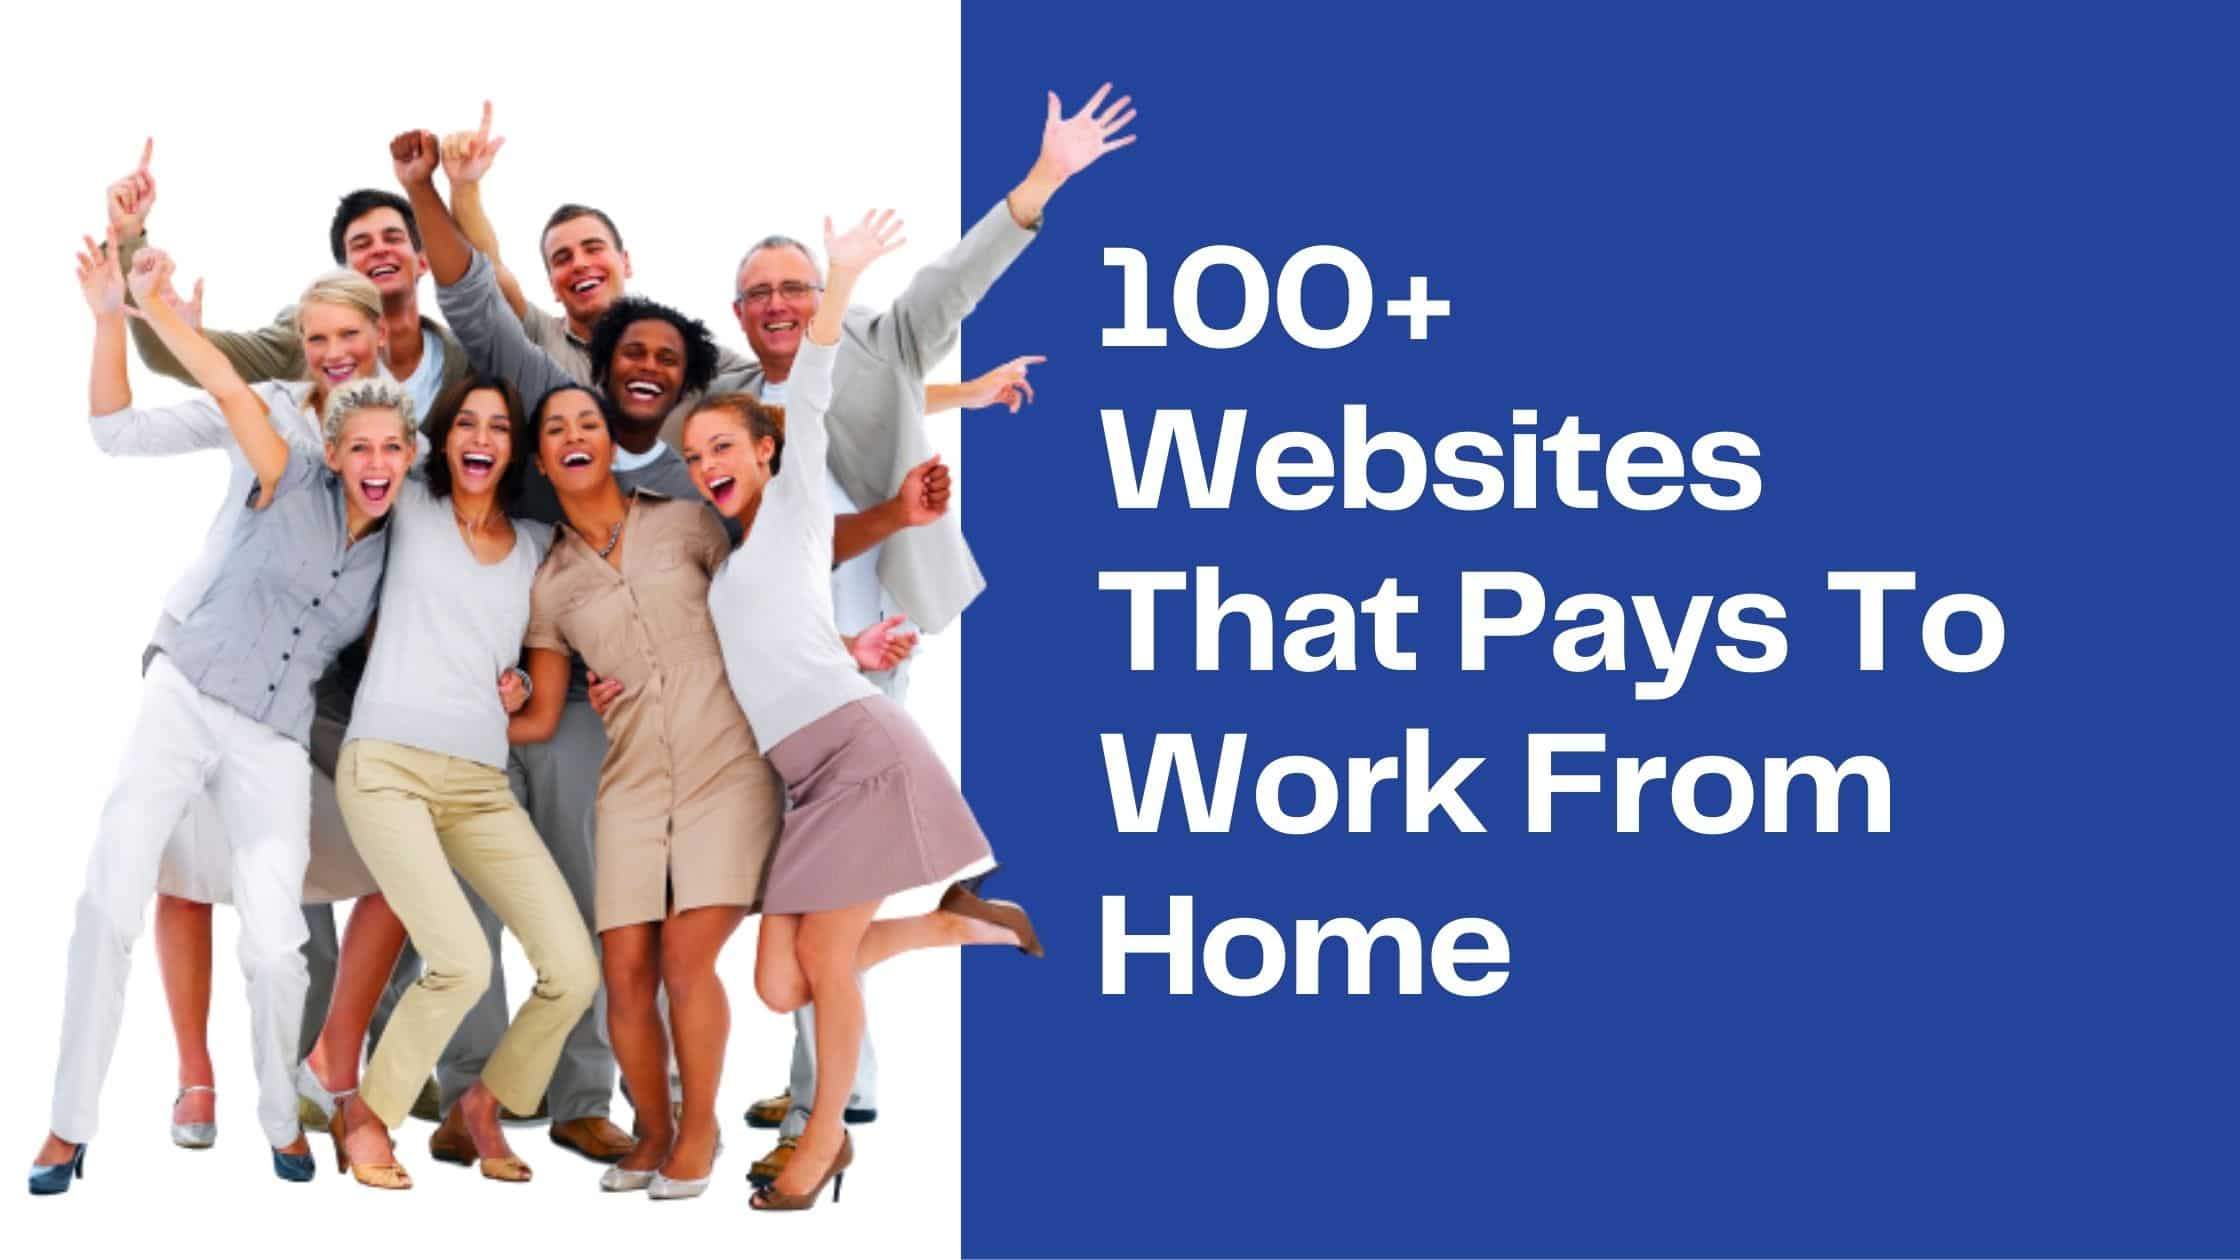 100+ websites that pays to work from home